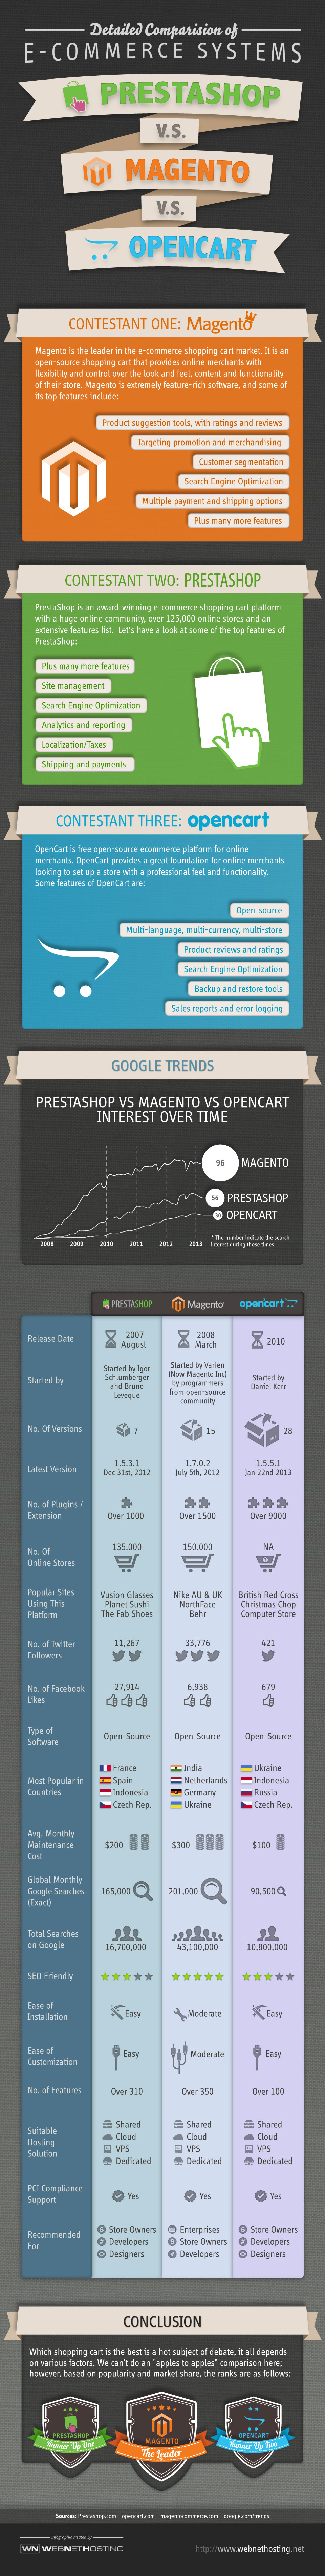 Prestashop Vs Magento Cs Opencart A Detailed Comparison